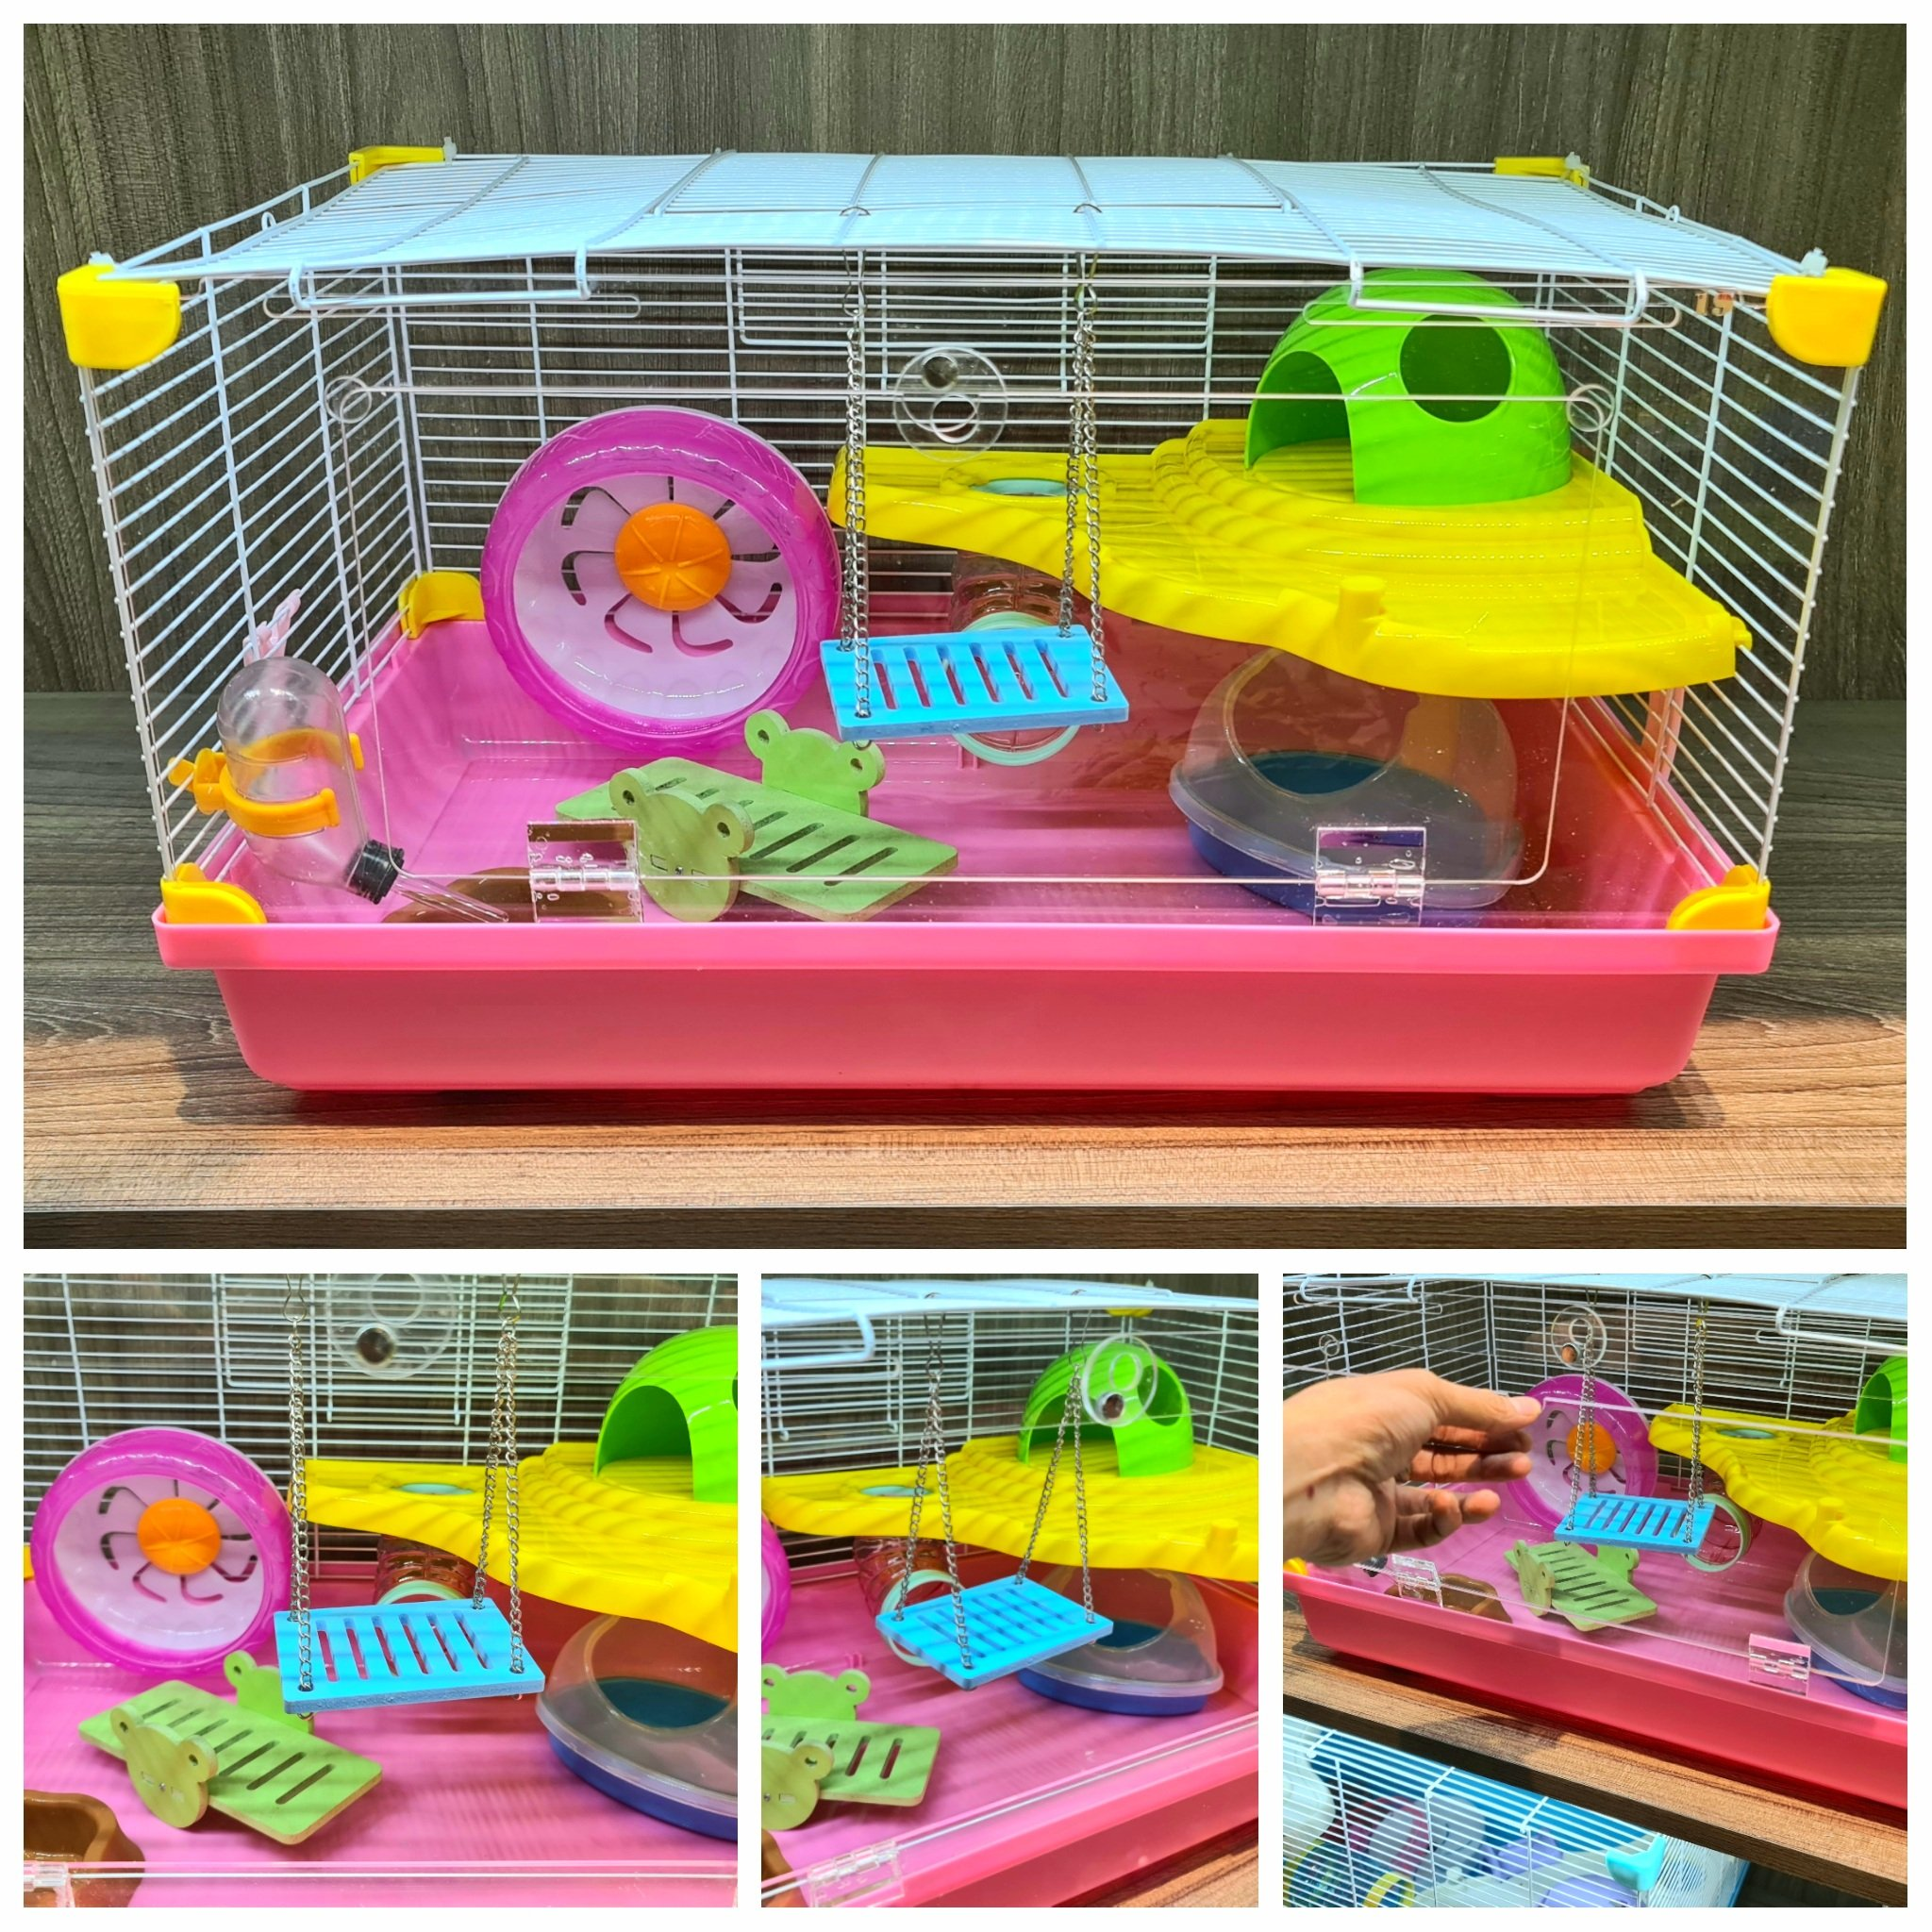 Lồng trứng đại cửa trong suốt full toy size 47.36.30